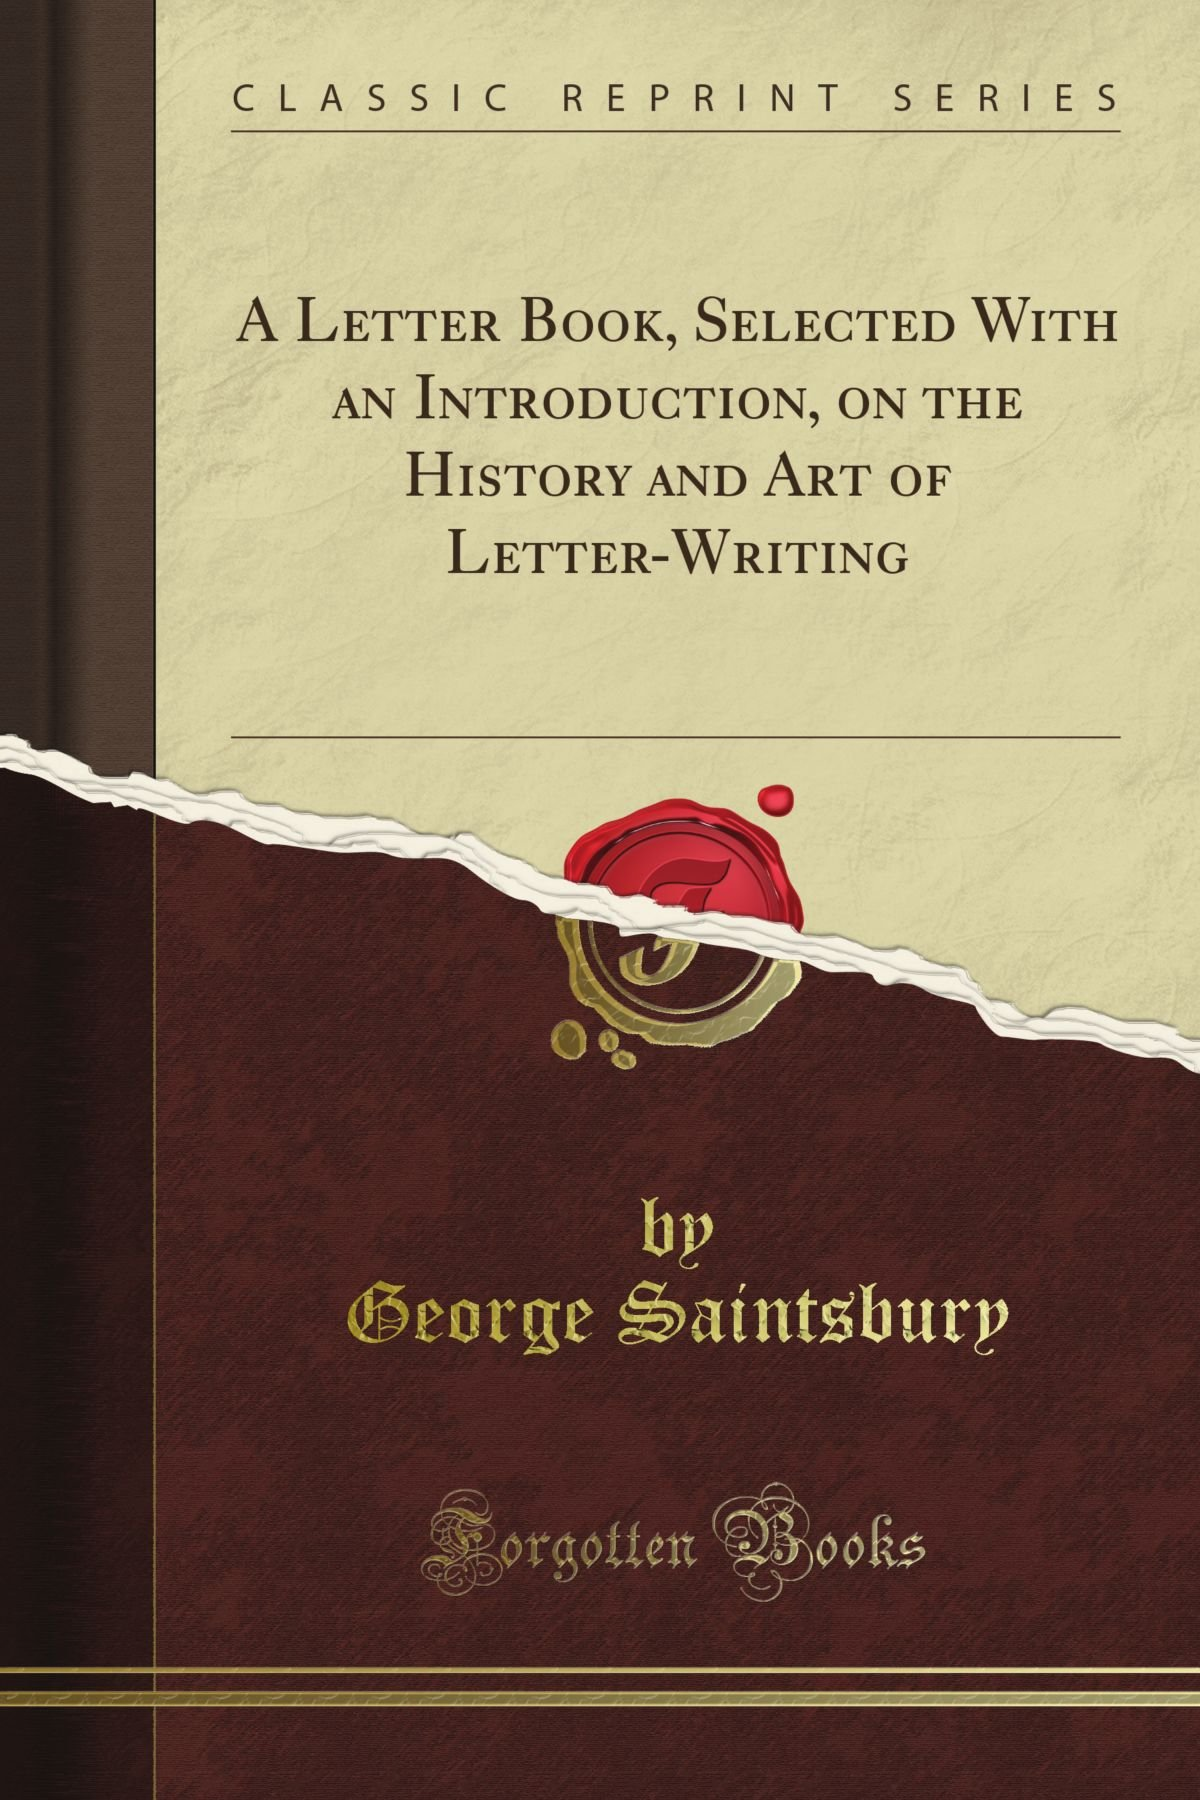 A Letter Book, Selected With an Introduction, on the History and Art of Letter-Writing (Classic Reprint) ebook